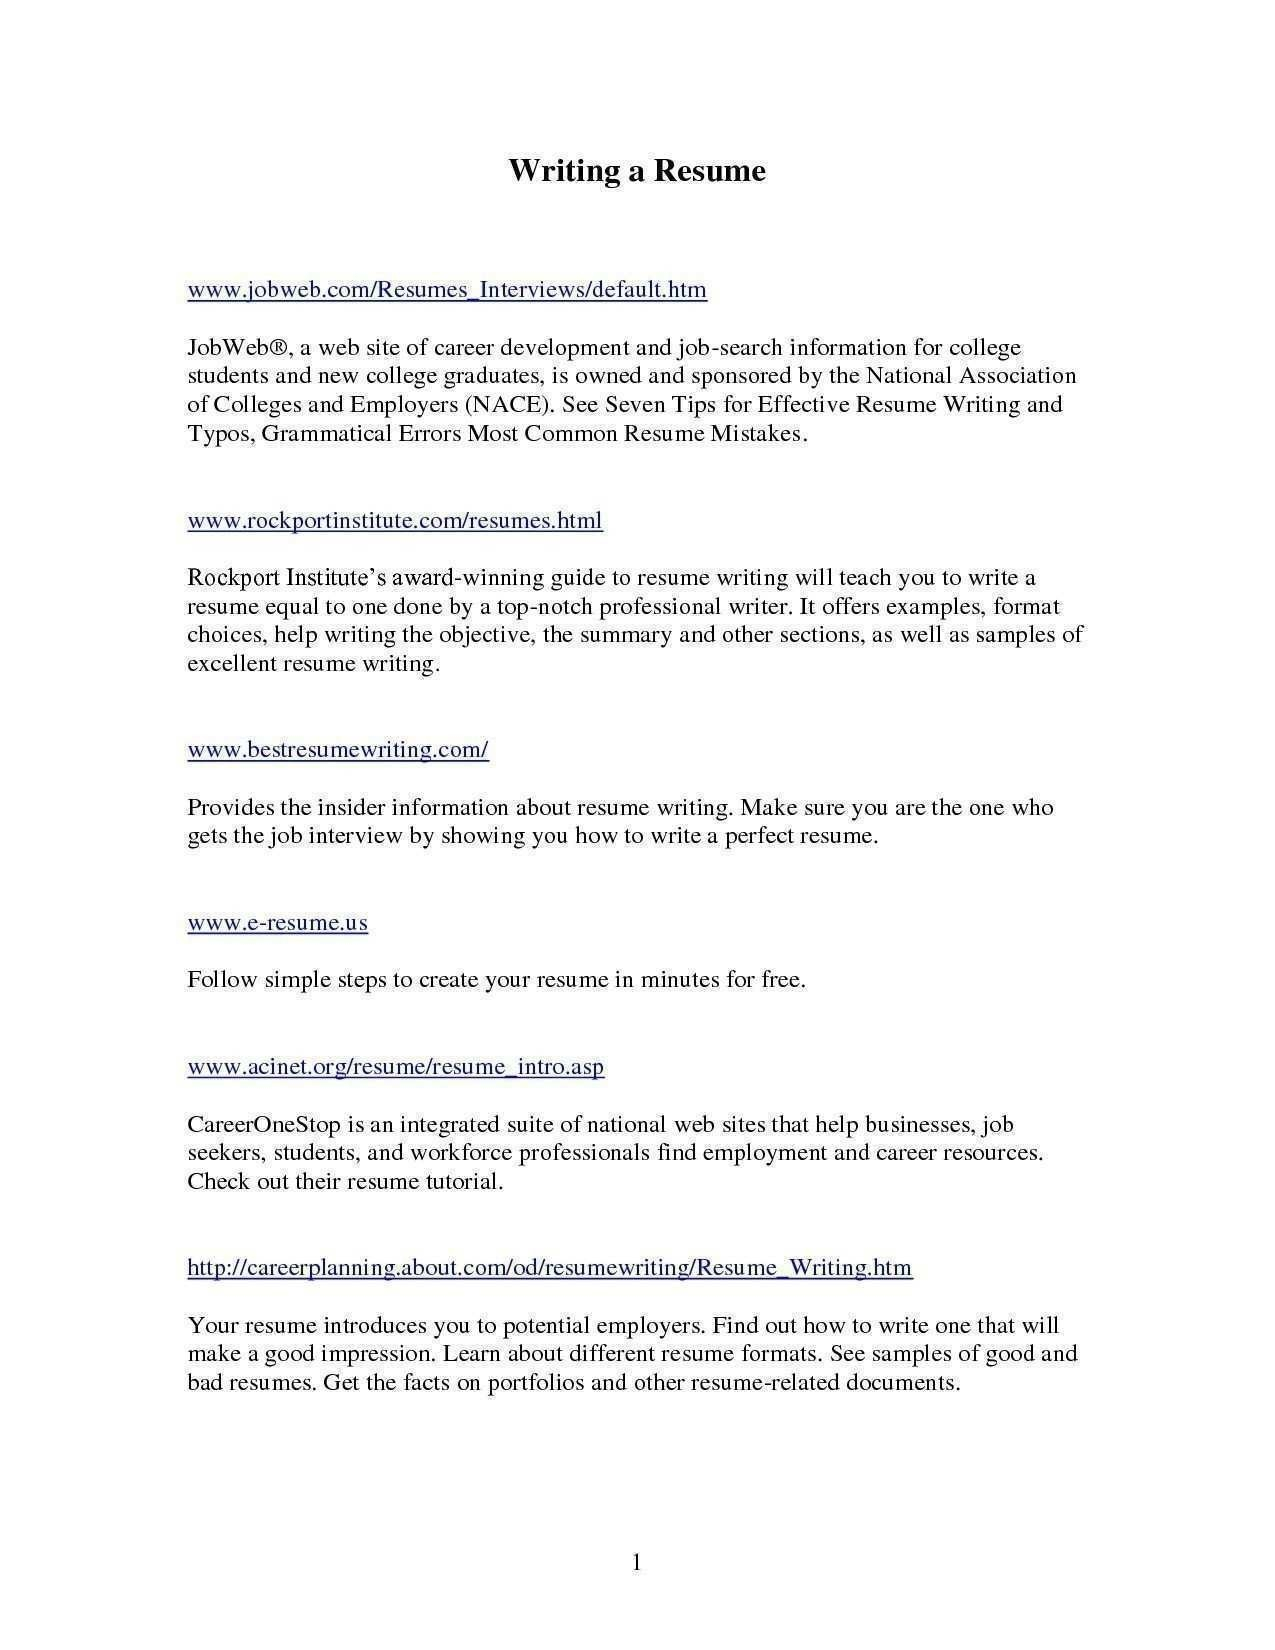 Landscape Job Description for Resume - Copywriting Career Description Fresh Copywriter Job Description